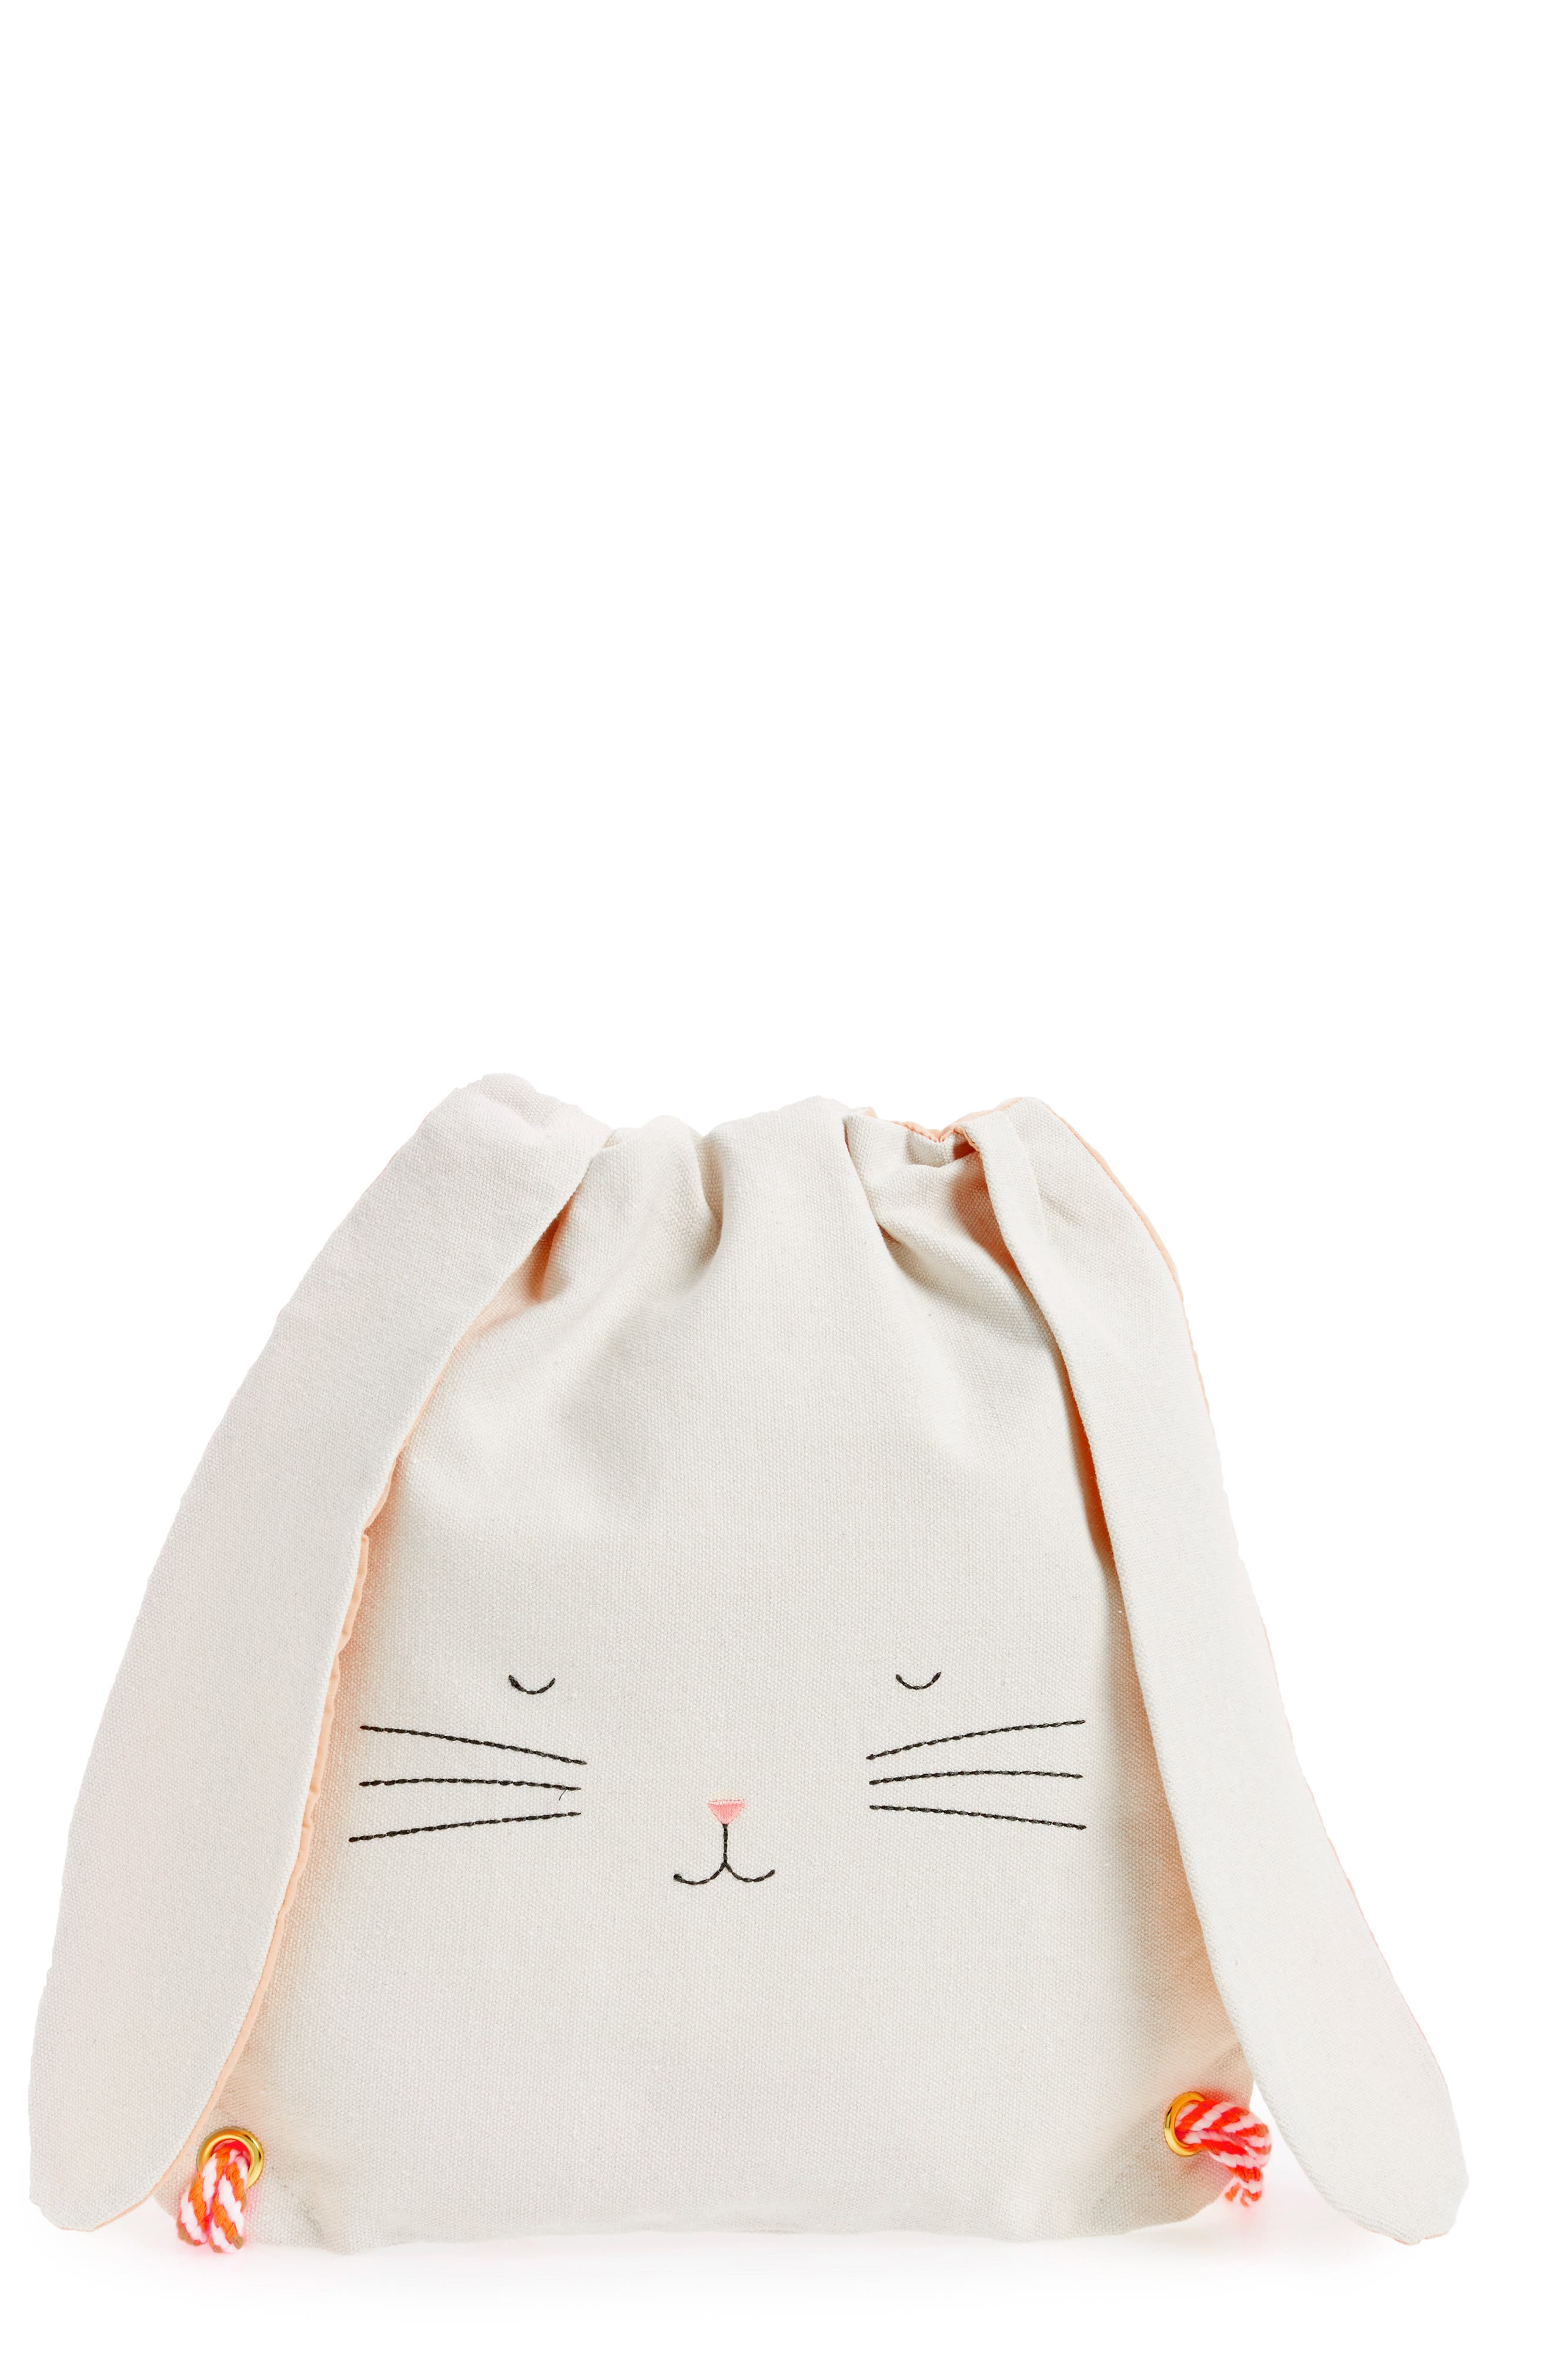 Bunny Backpack,                         Main,                         color, 900